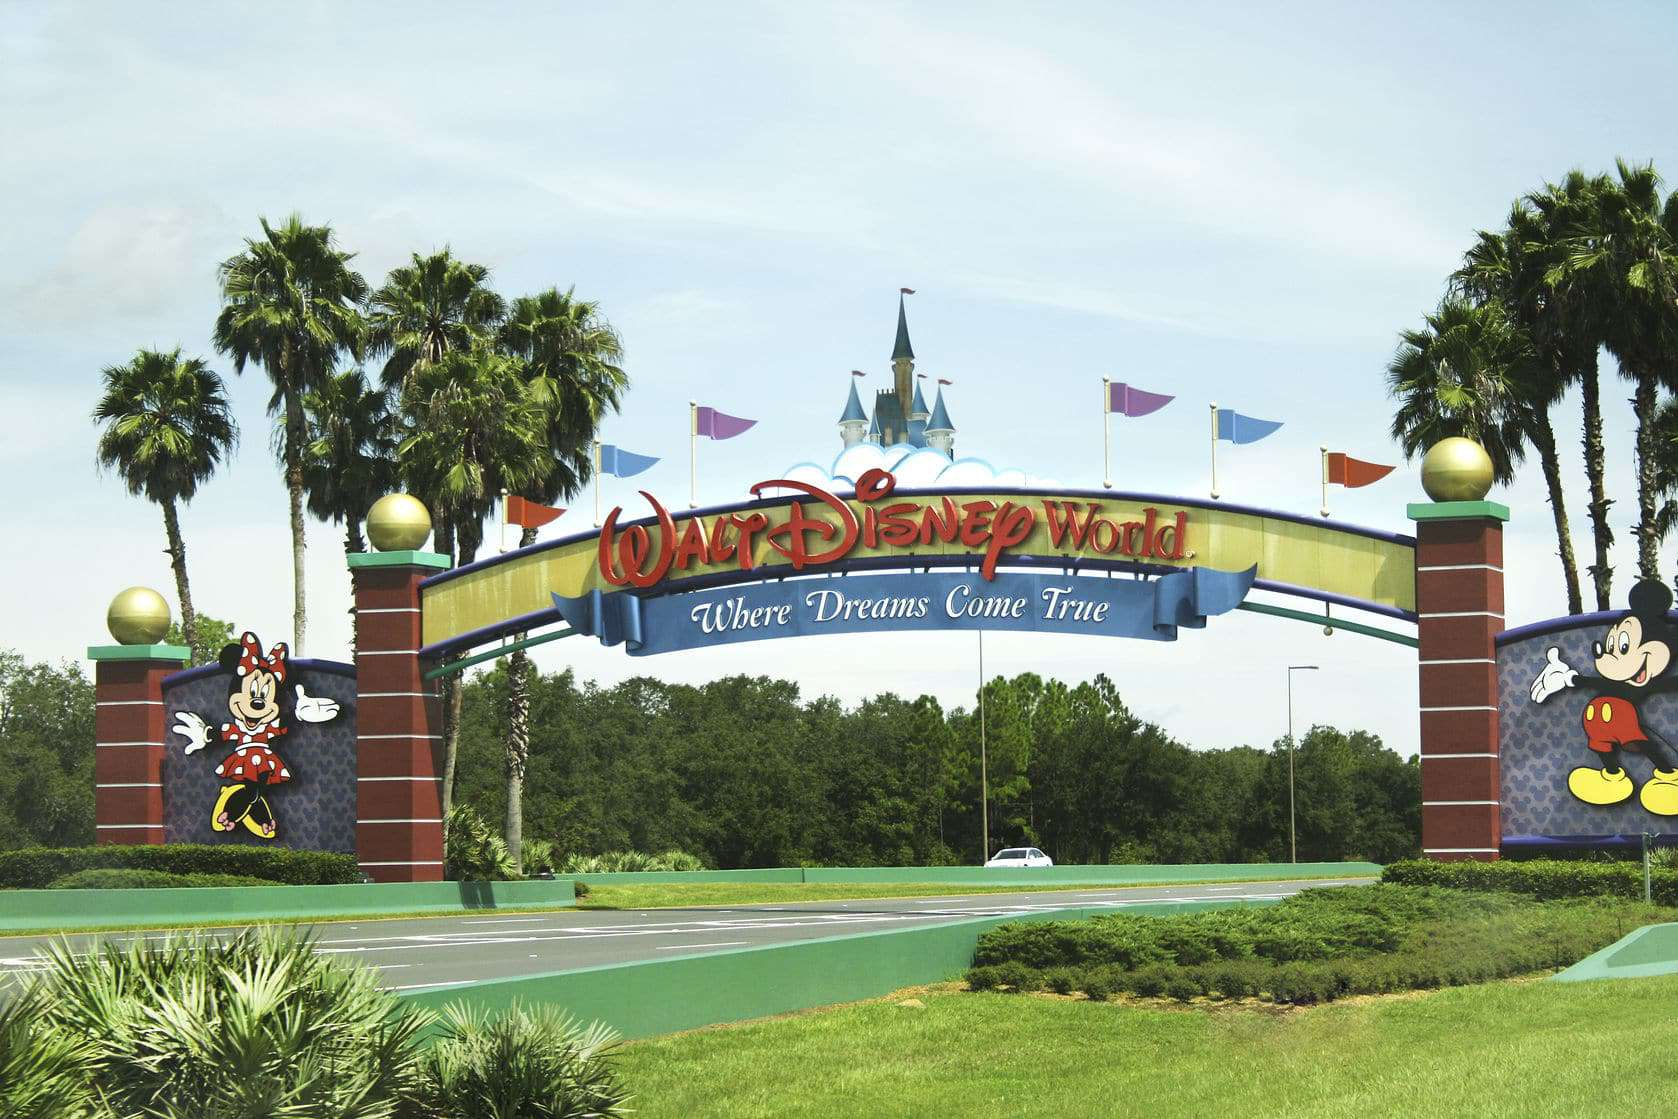 Welcome sign for Disney World